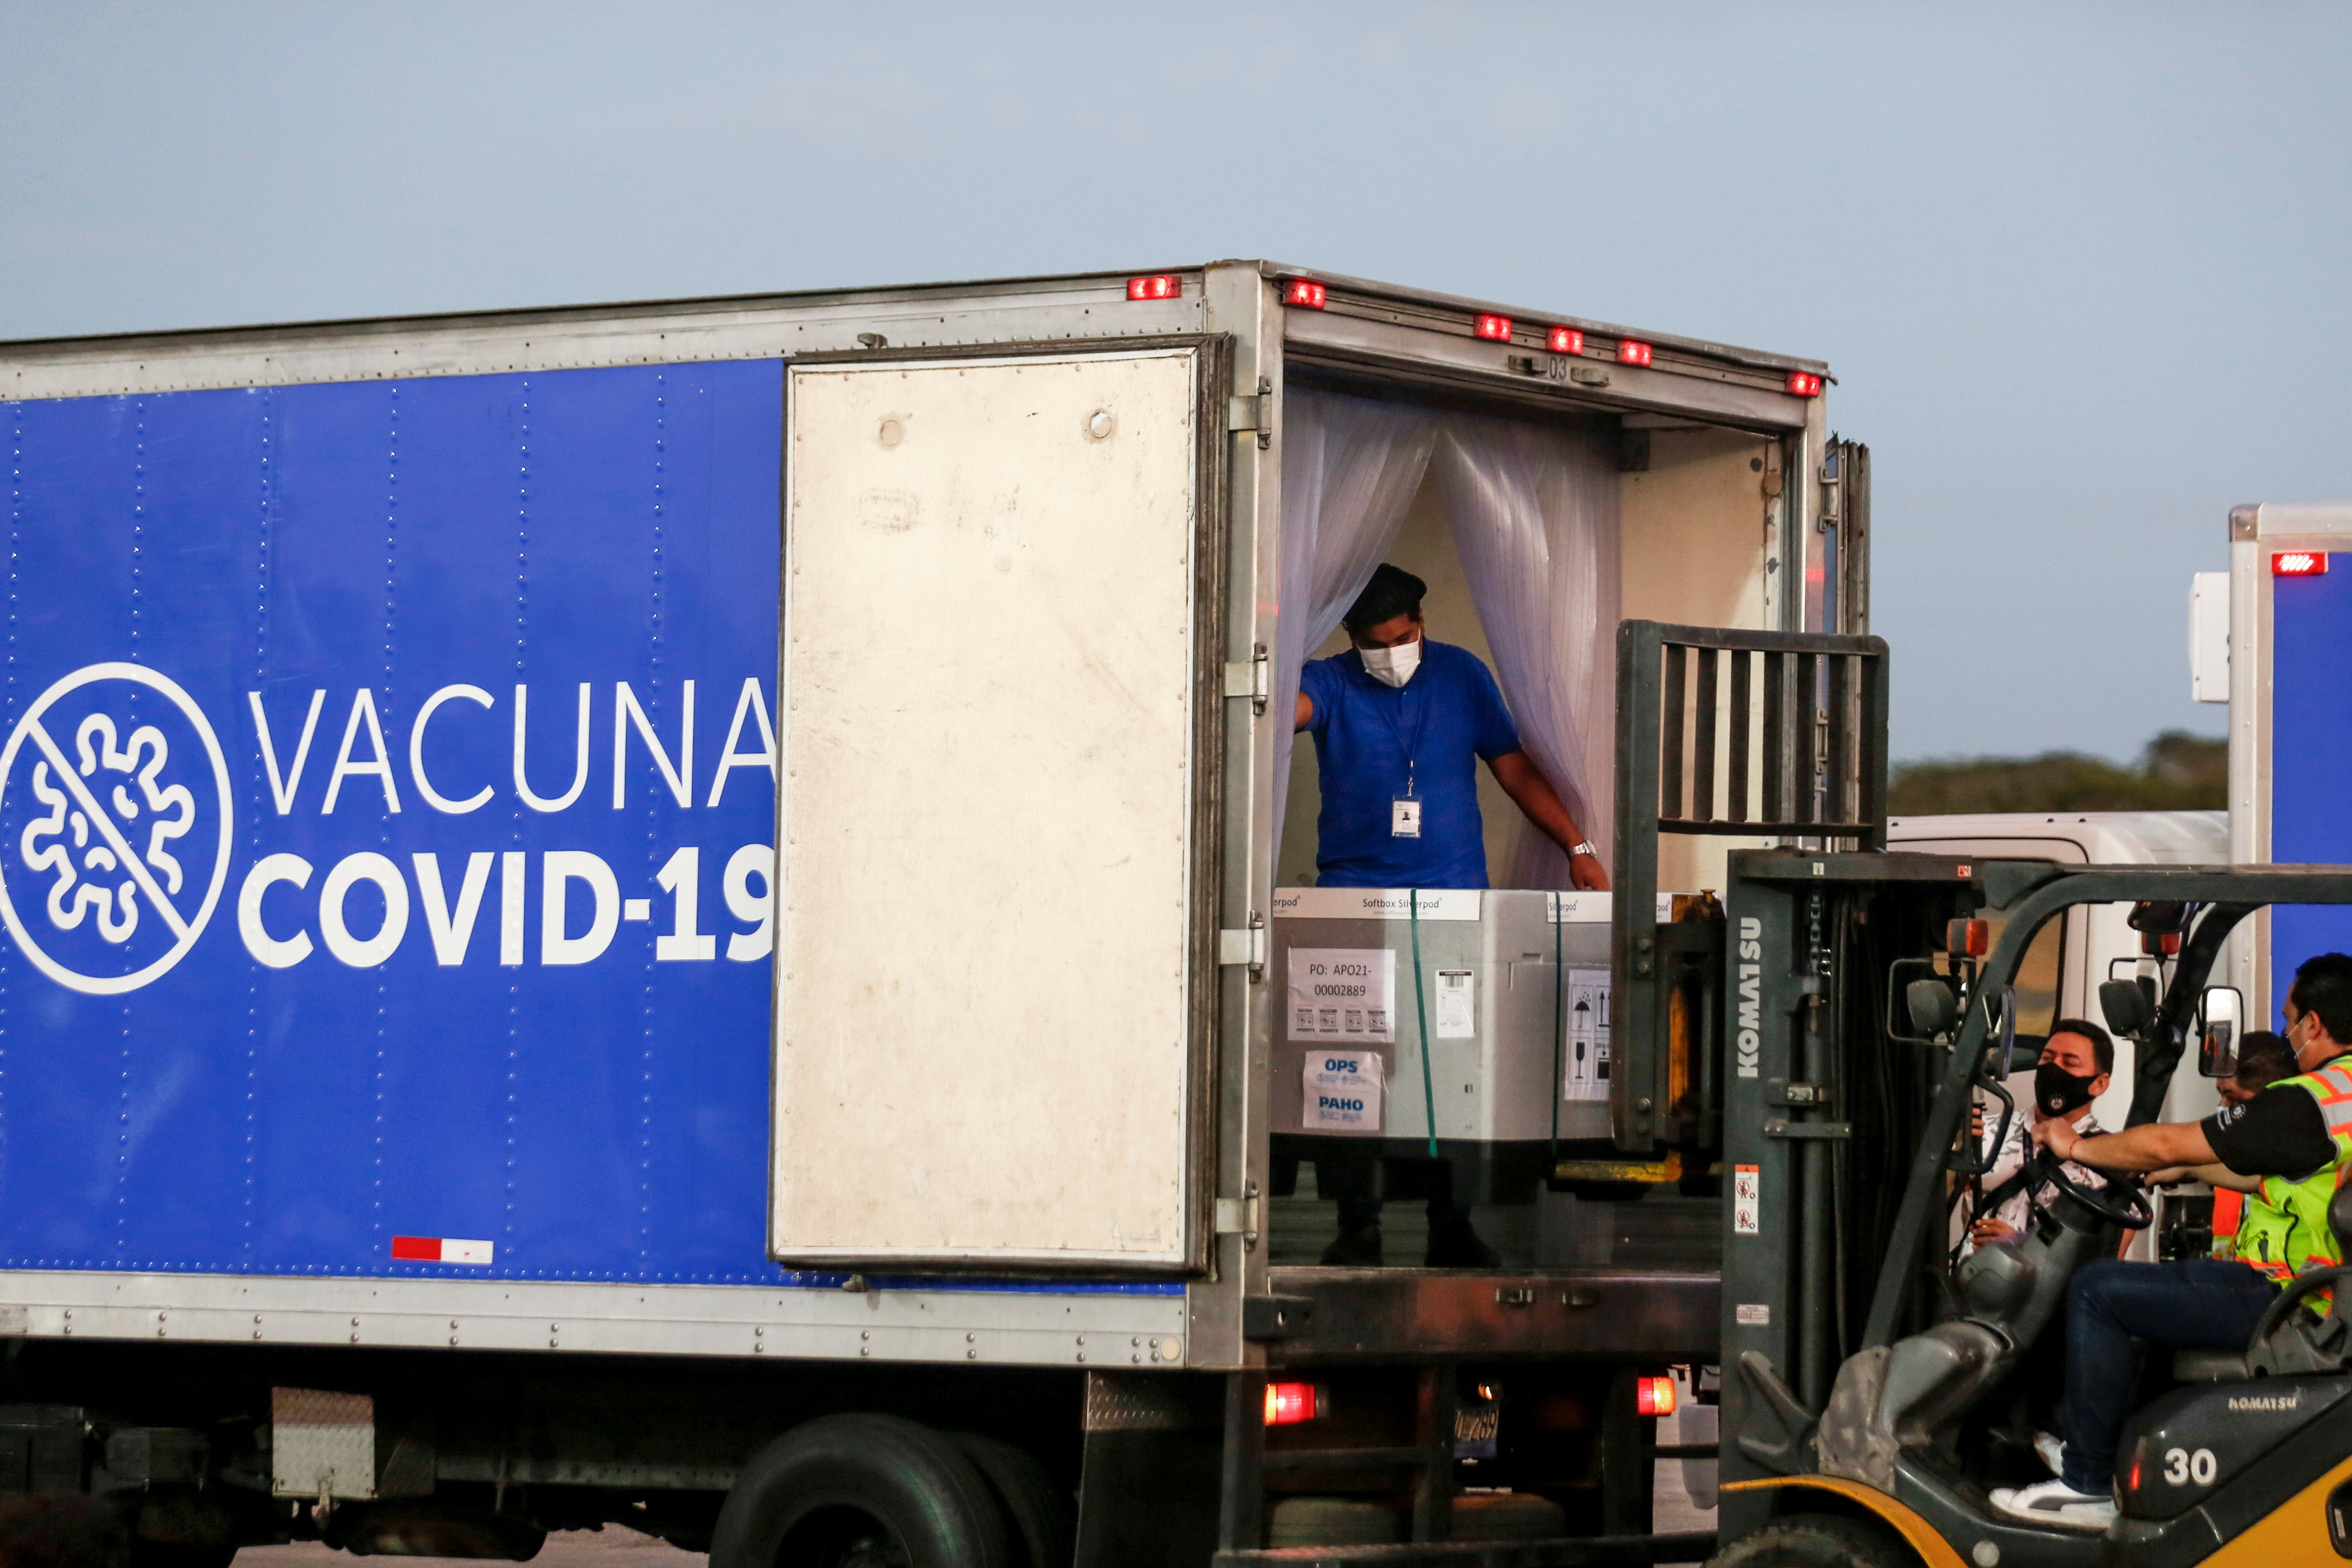 Containers of AstraZeneca (SKBio Corea) vaccines under the COVAX scheme against the coronavirus disease (COVID-19) are loaded onto a truck after arriving at the Mons. Oscar Arnulfo Romero International Airport, in San Luis Talpa, El Salvador March 11, 2021. REUTERS/Jose Cabezas